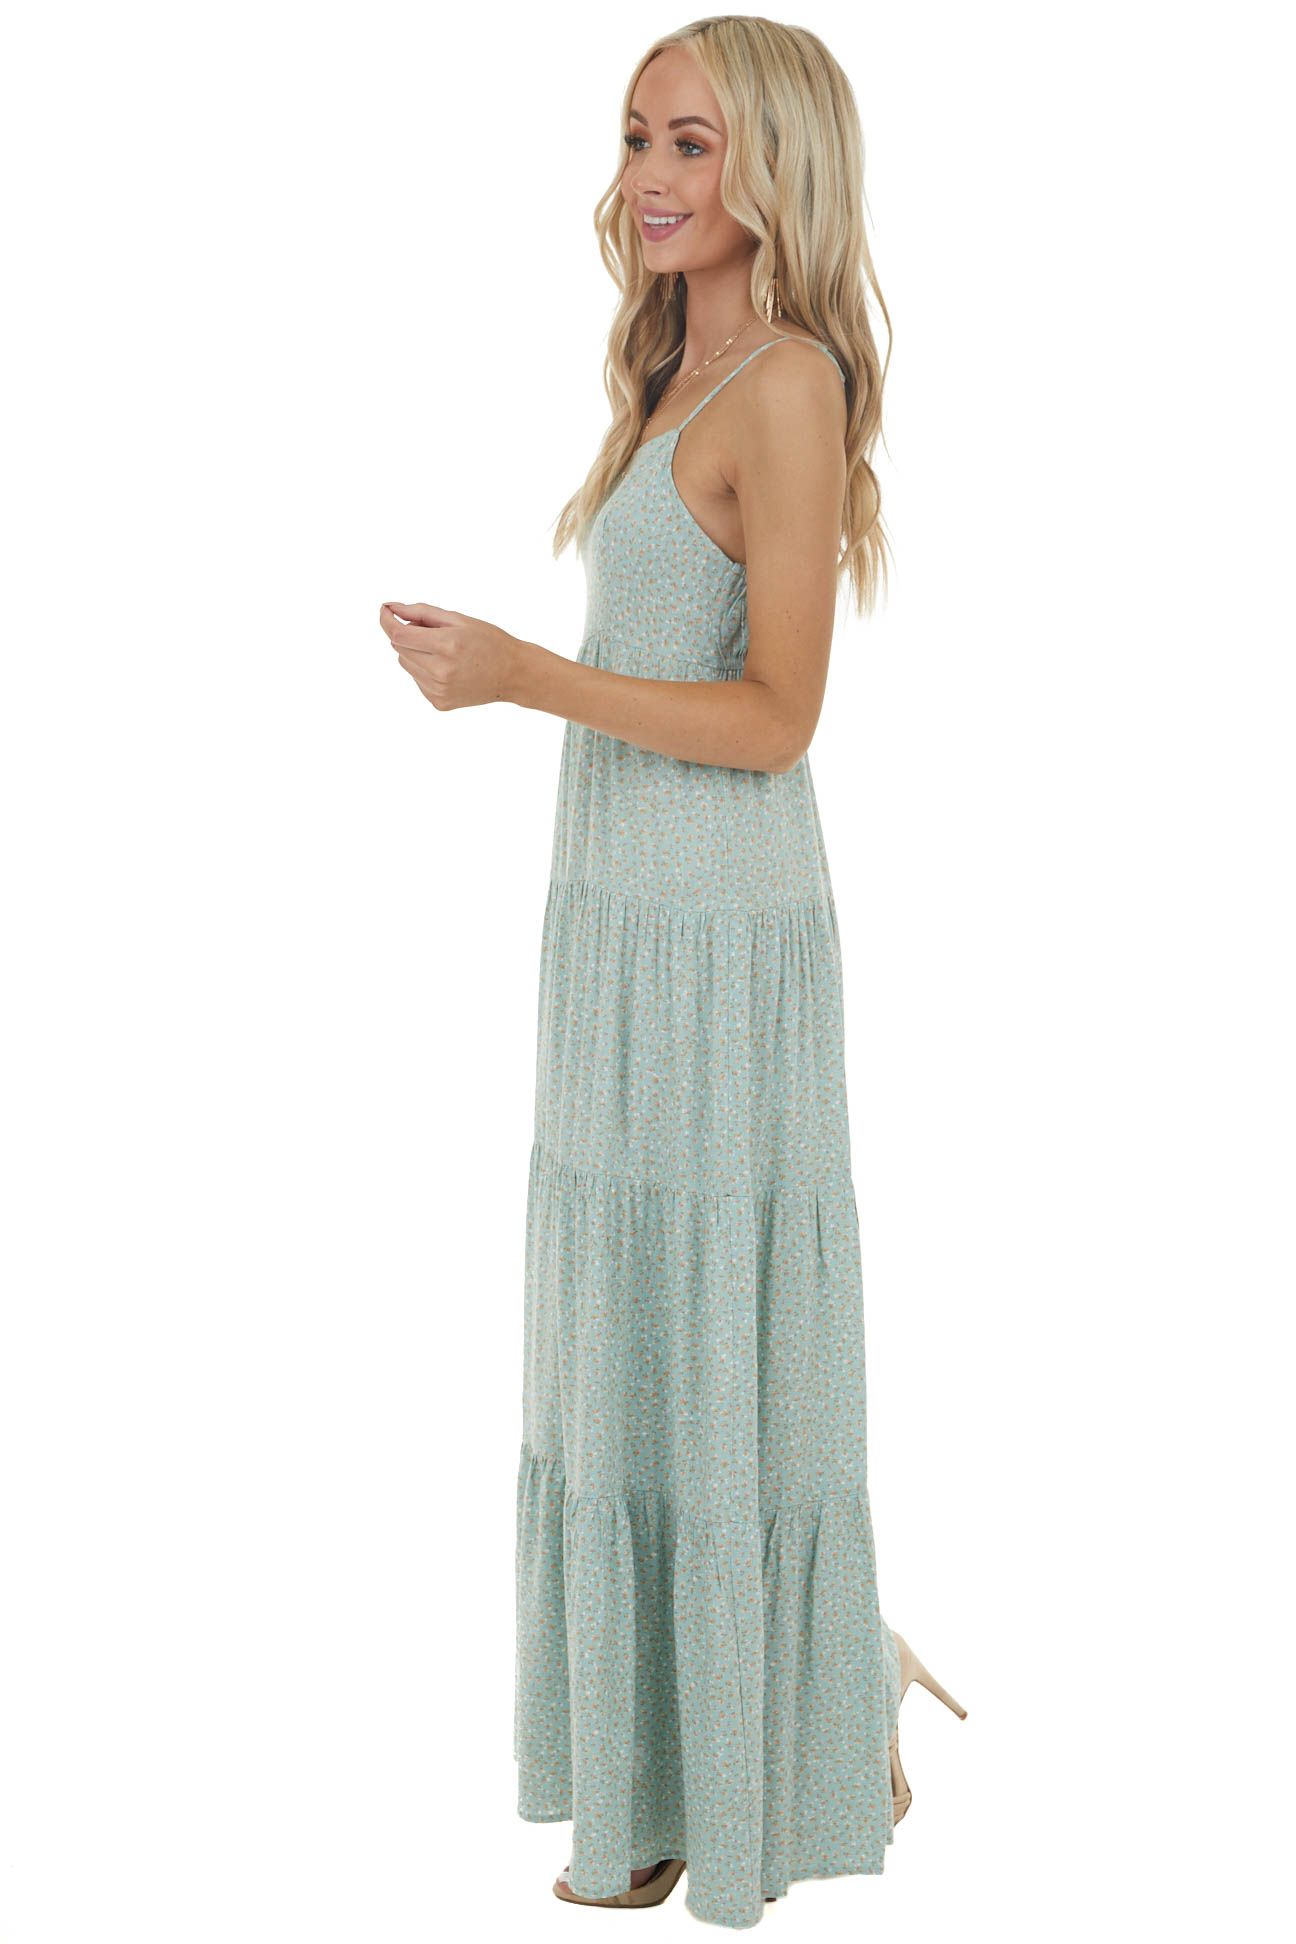 Sage Ditsy Floral Tiered Sleeveless Square Neck Maxi Dress